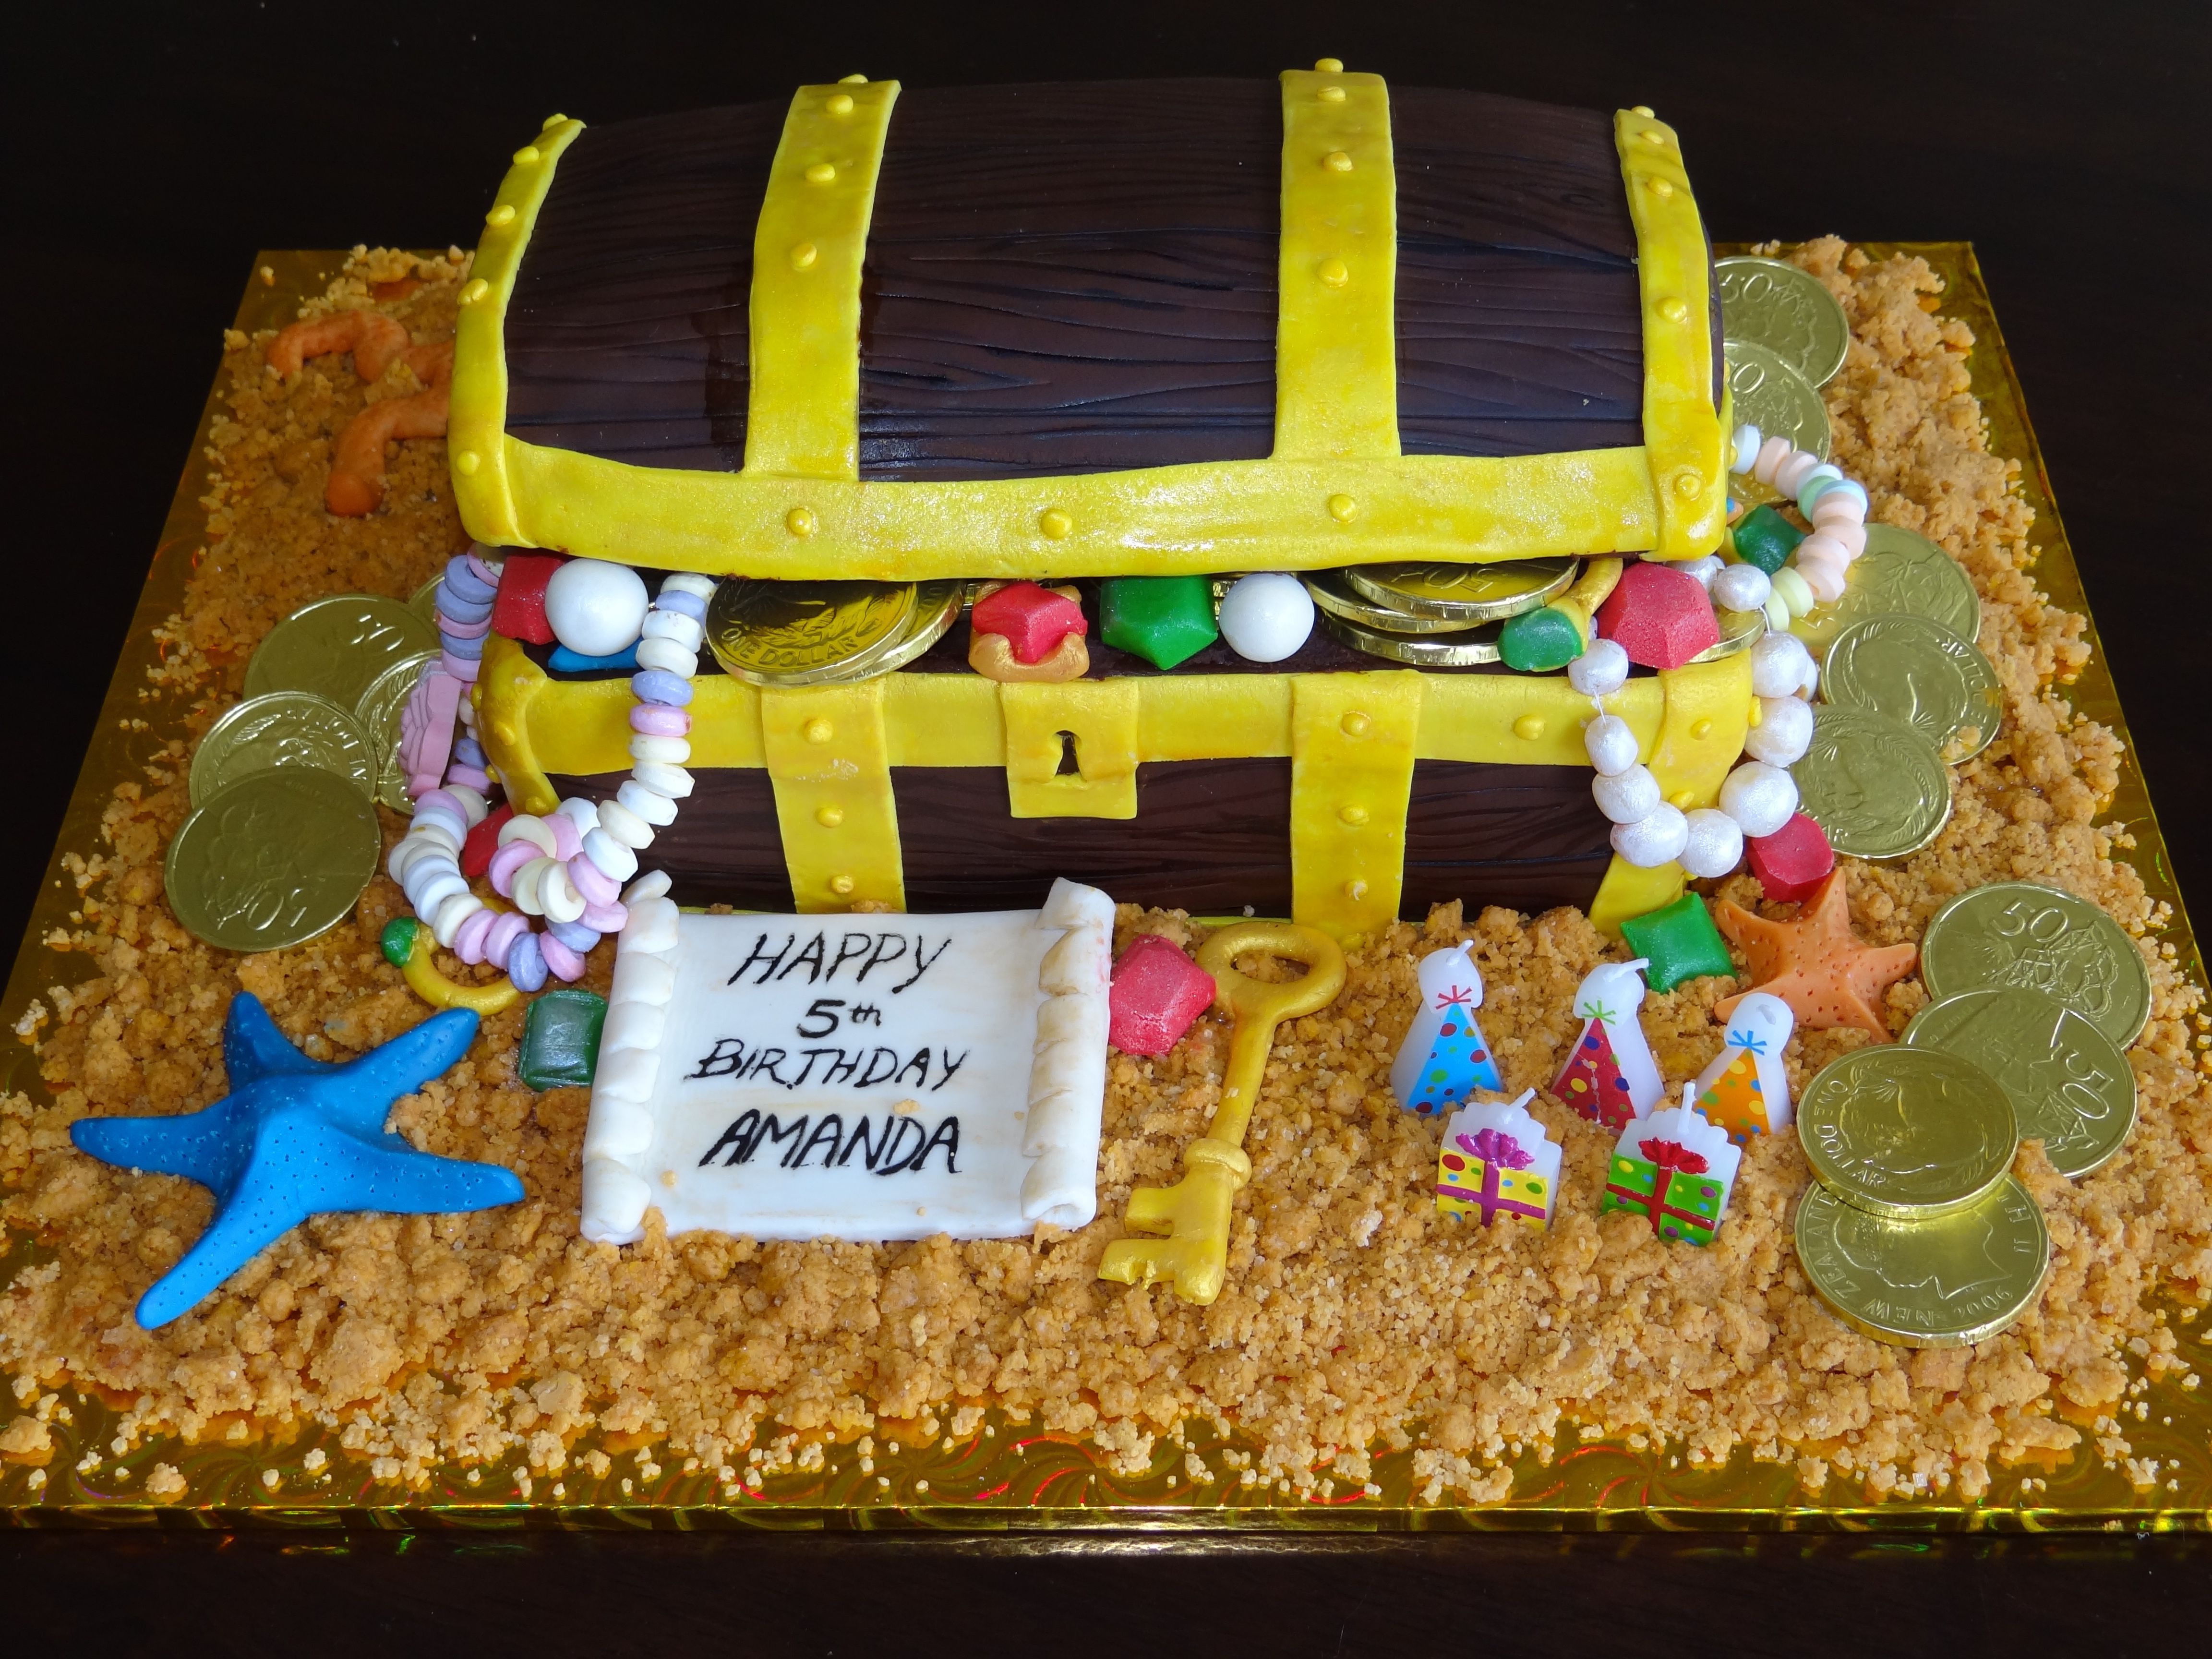 Treasure chest cake filled with jewels and chocolate money ...